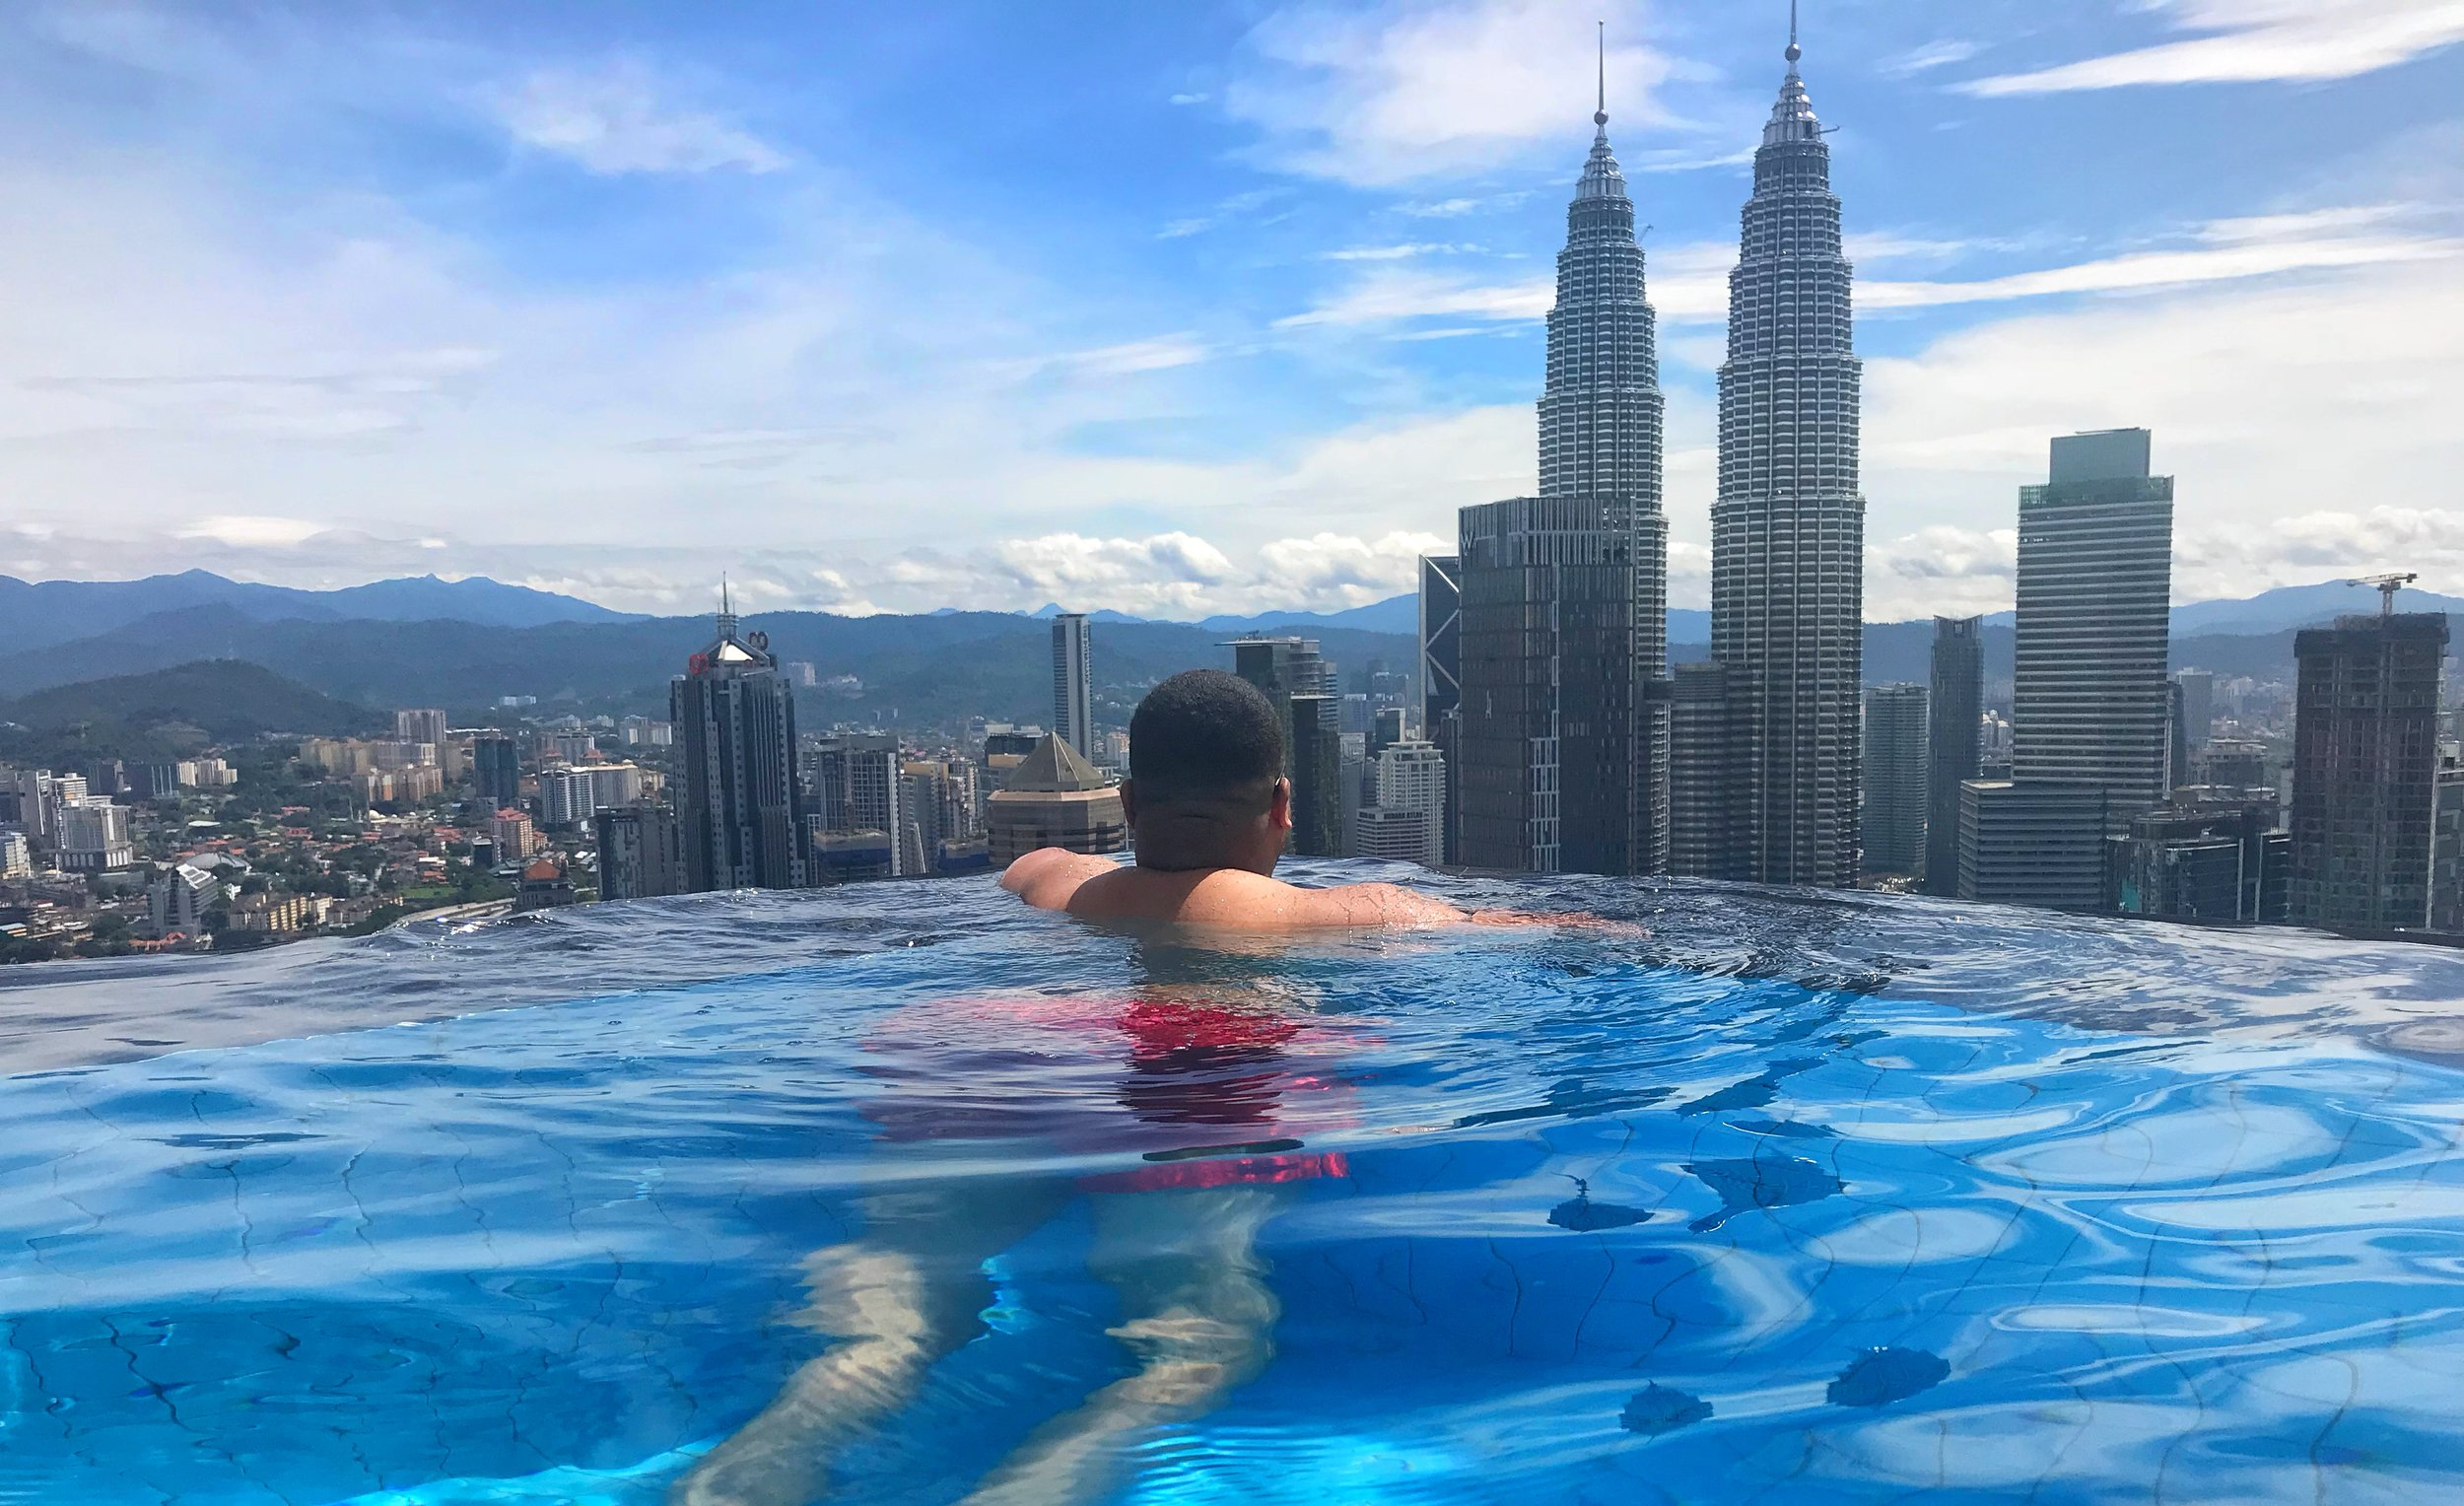 The rooftop infinity pools in Kuala Lumpur provide the best views of the city.